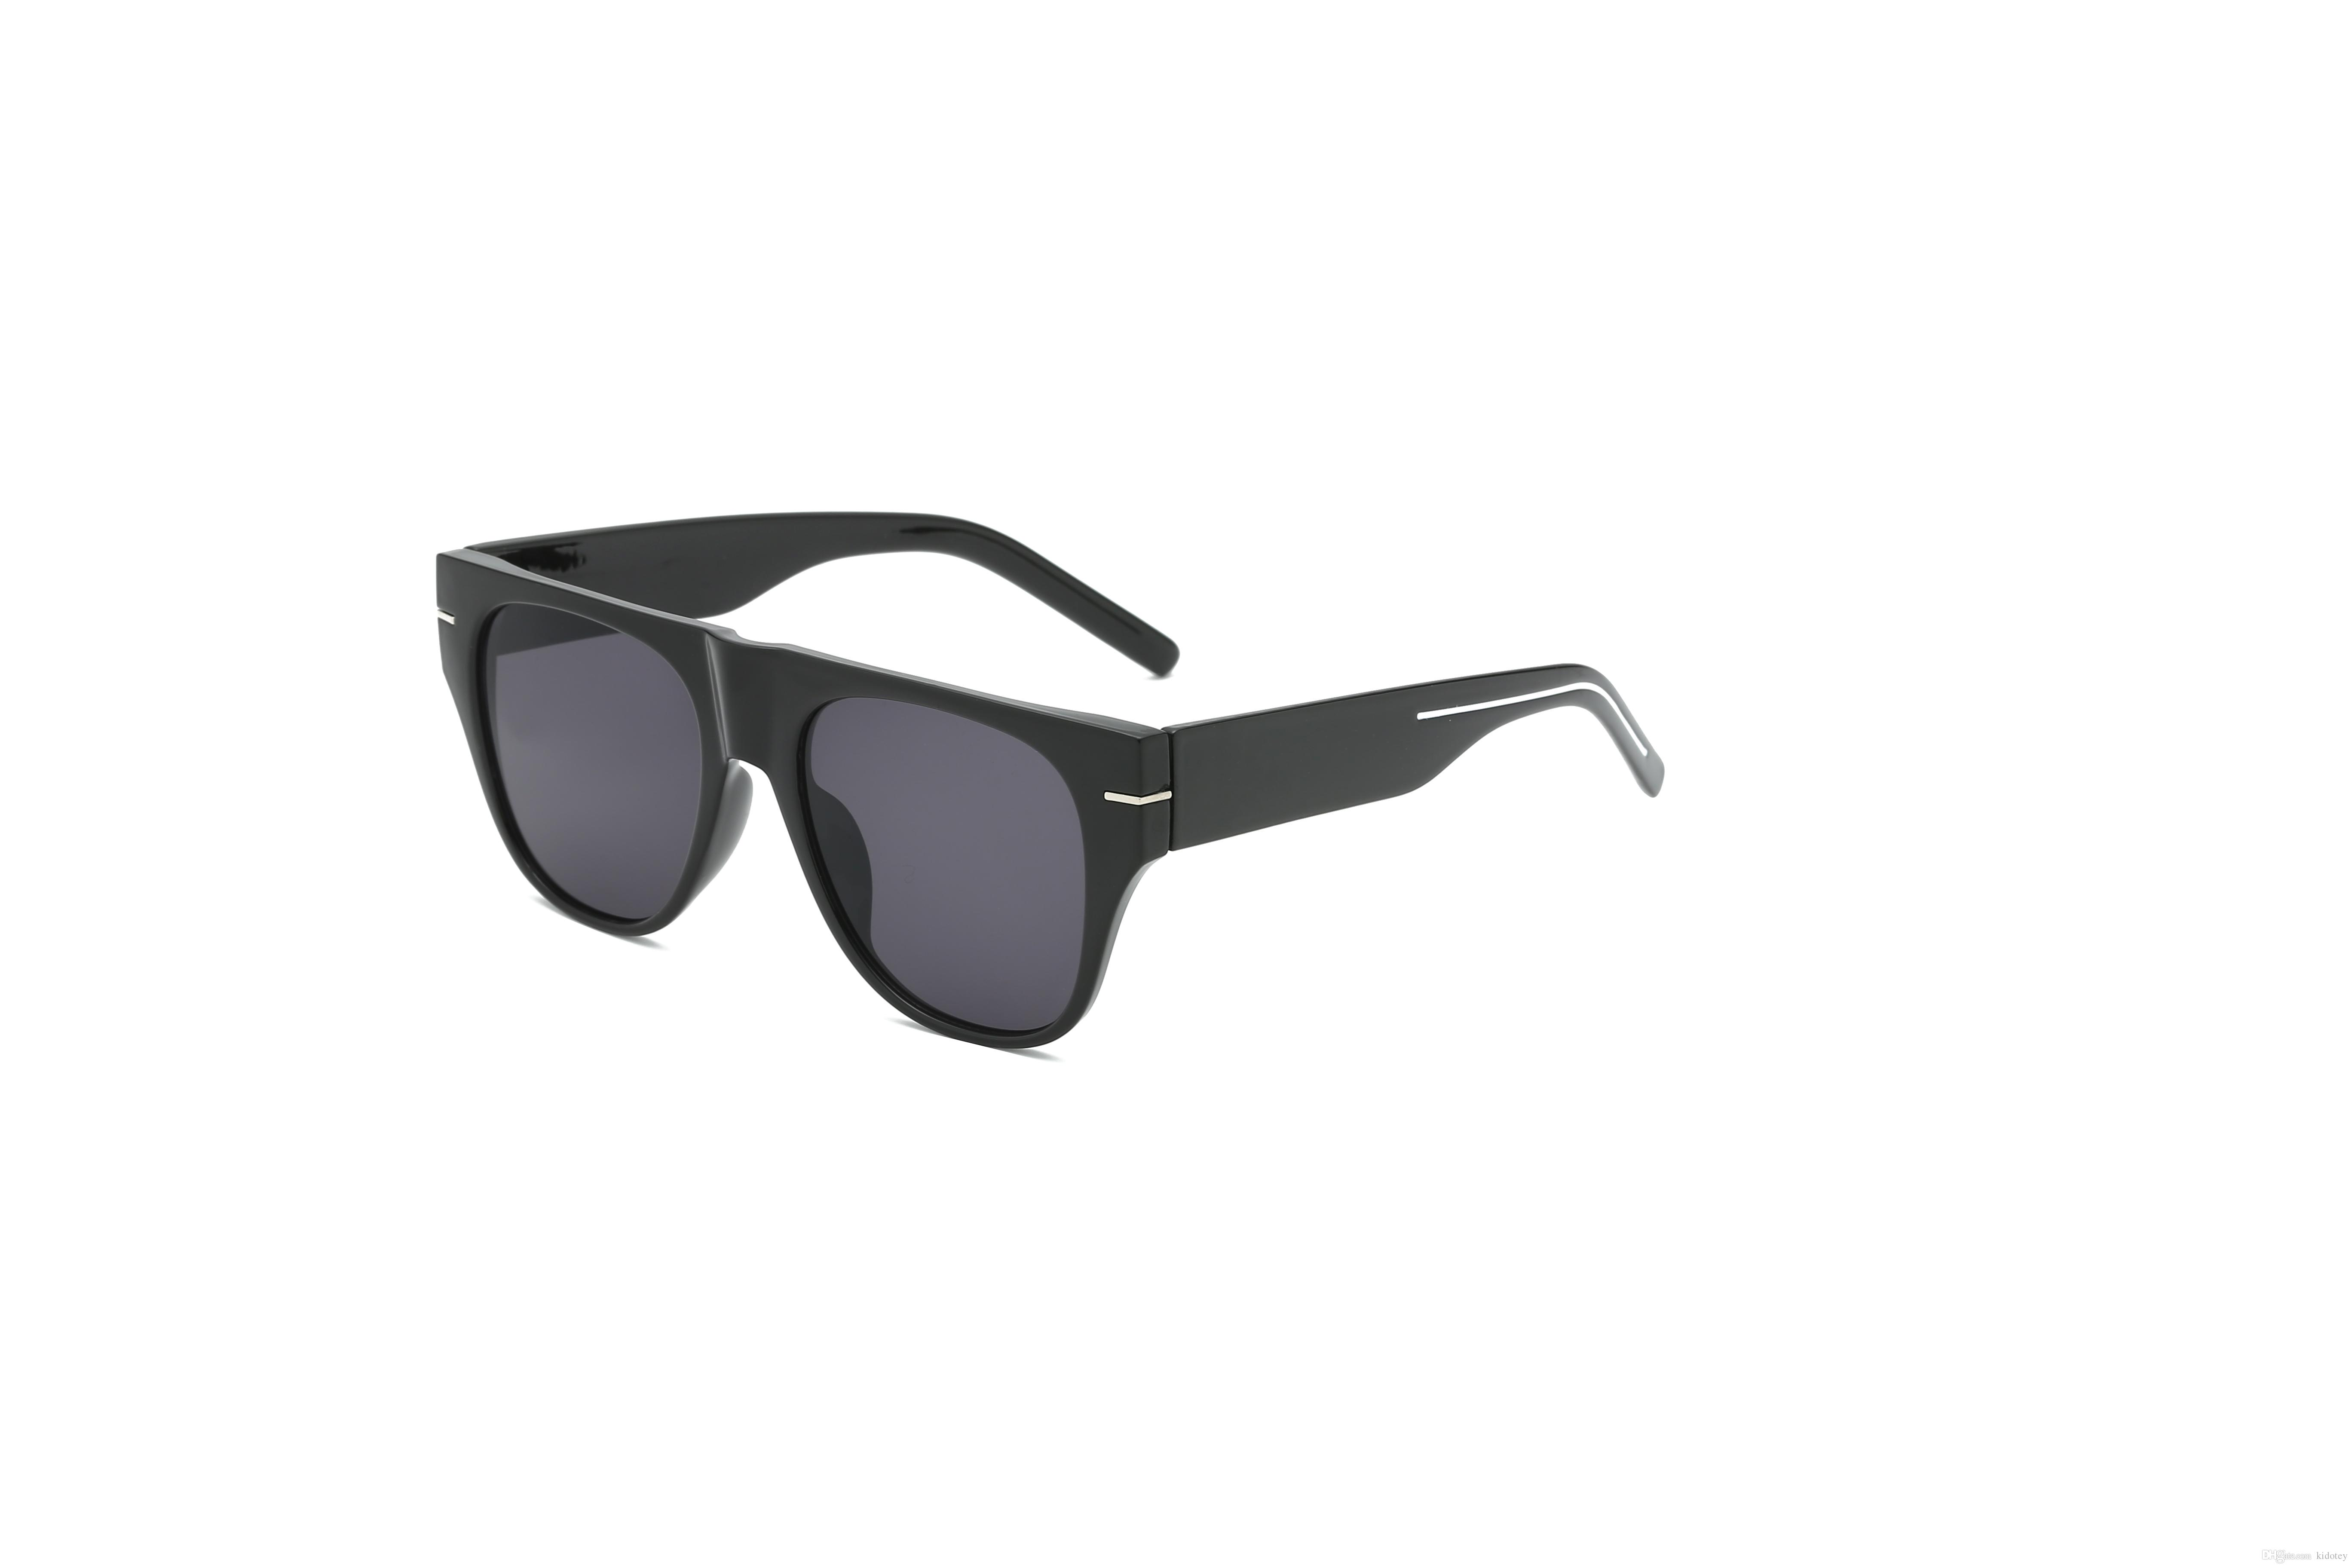 9ae9fc01d2bc New Square Style Fashion Sunglasses for Men And Women, Euramerican ...